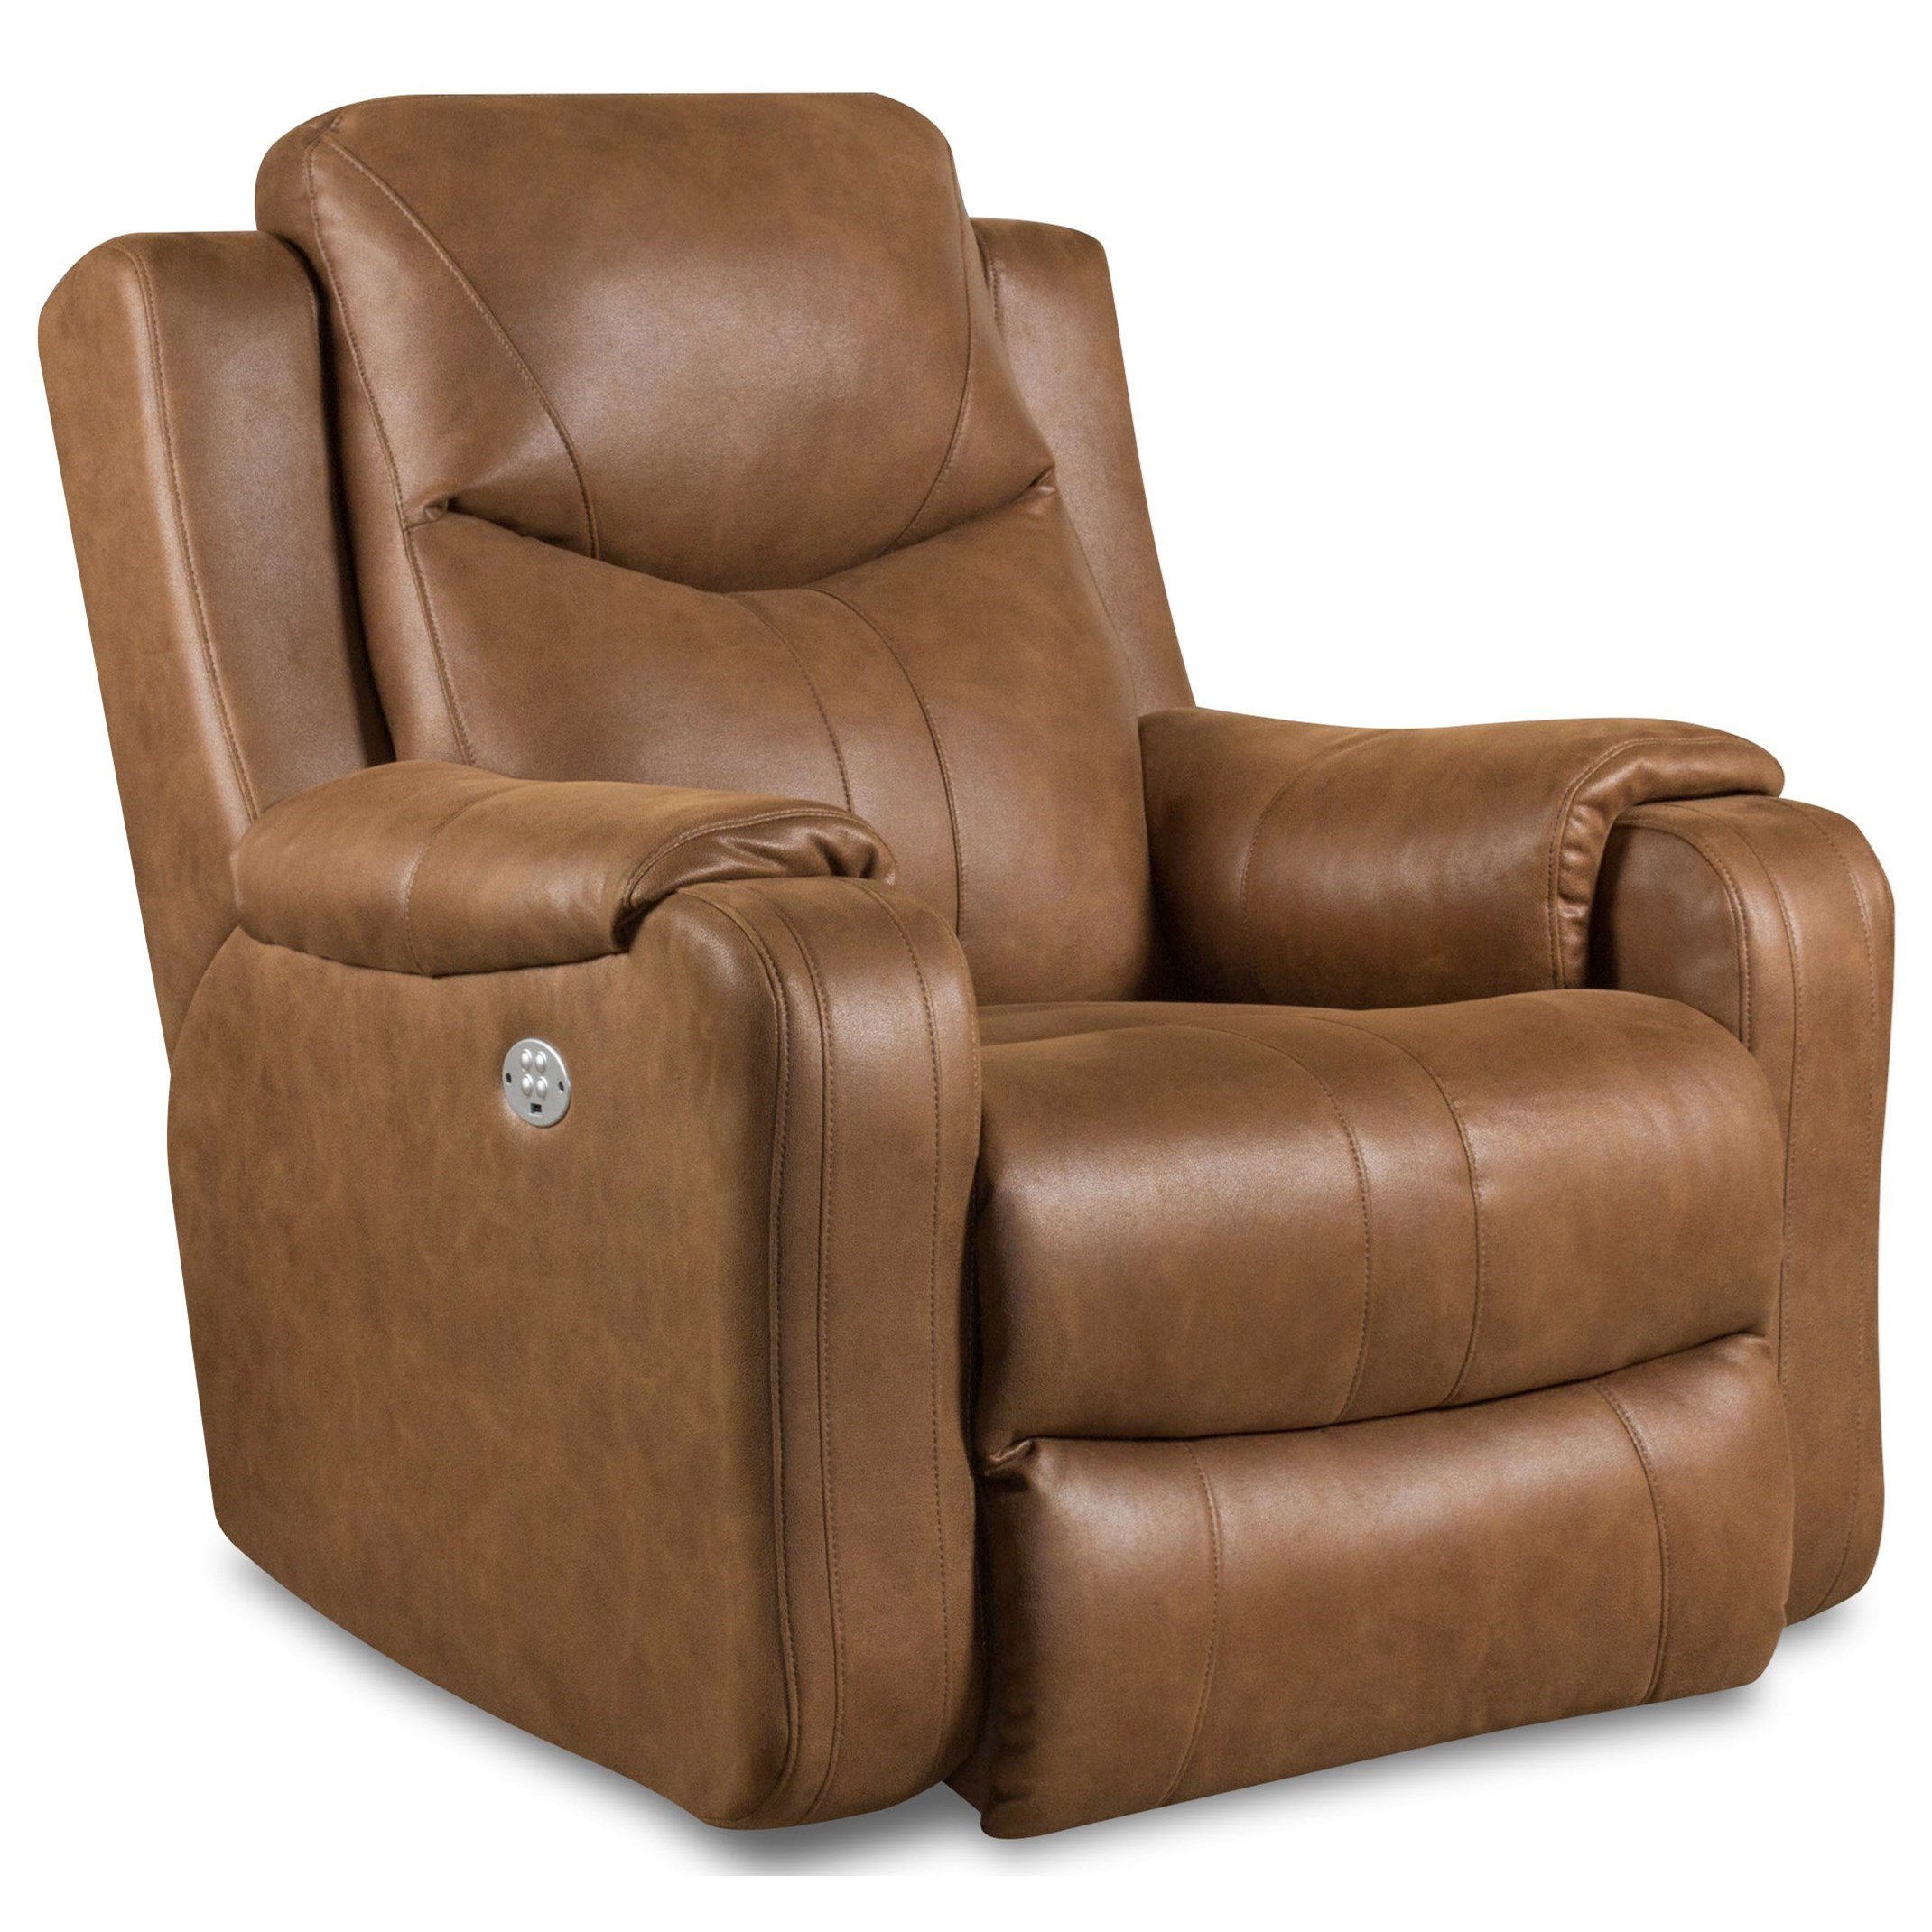 Swivel Rocker Recliner Chair Marvel Swivel Rocker Recliner By Southern Motion At Pilgrim Furniture City